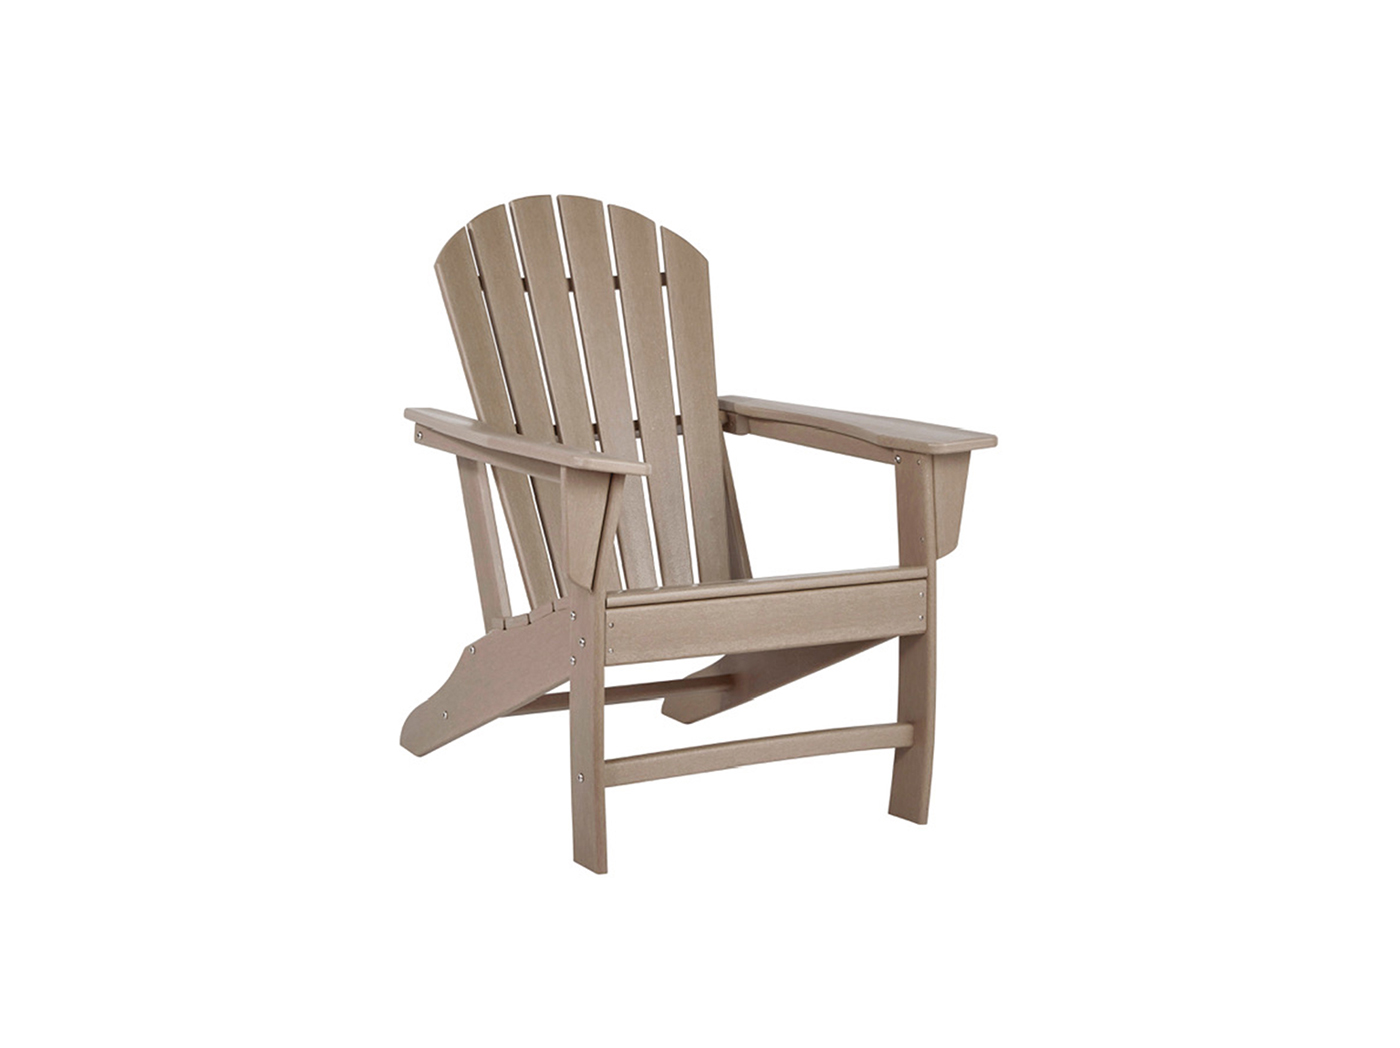 Signature Design Adirondak Chair Driftwood